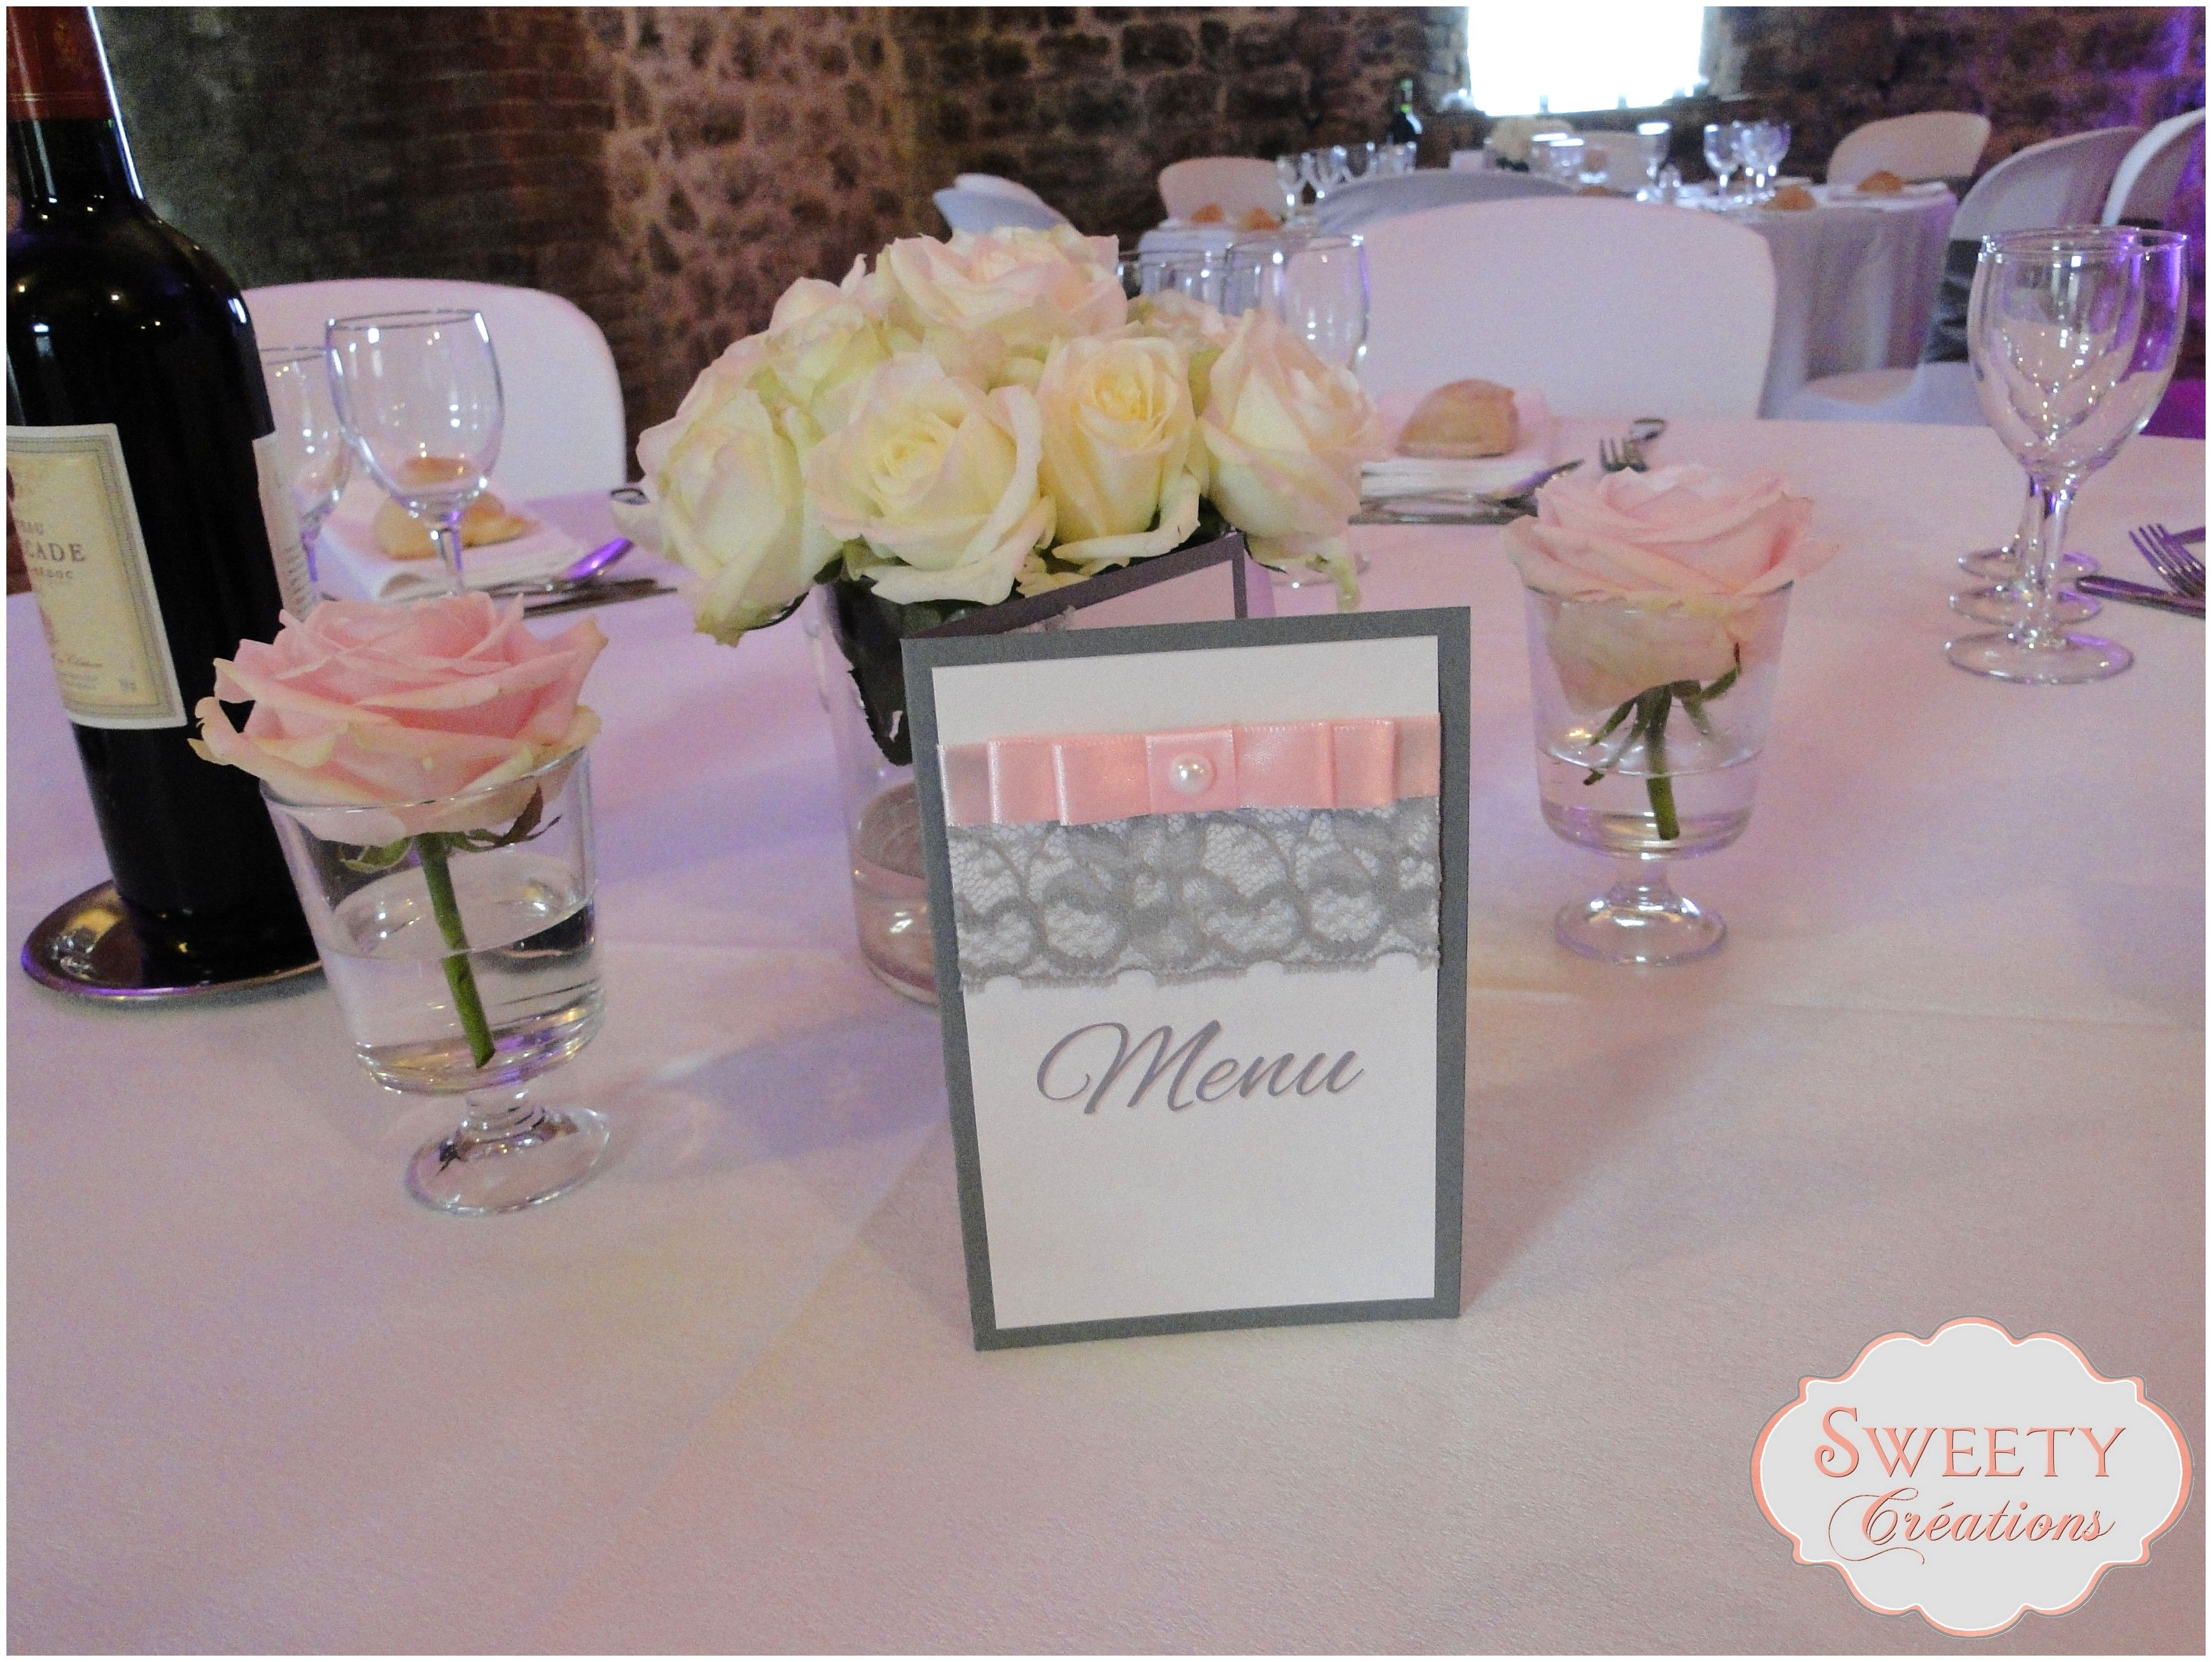 Menu Pour Mariage Th Me Rose Poudr Et Gris Cr Ation Sweety Cr Ations D Coration Table Faite